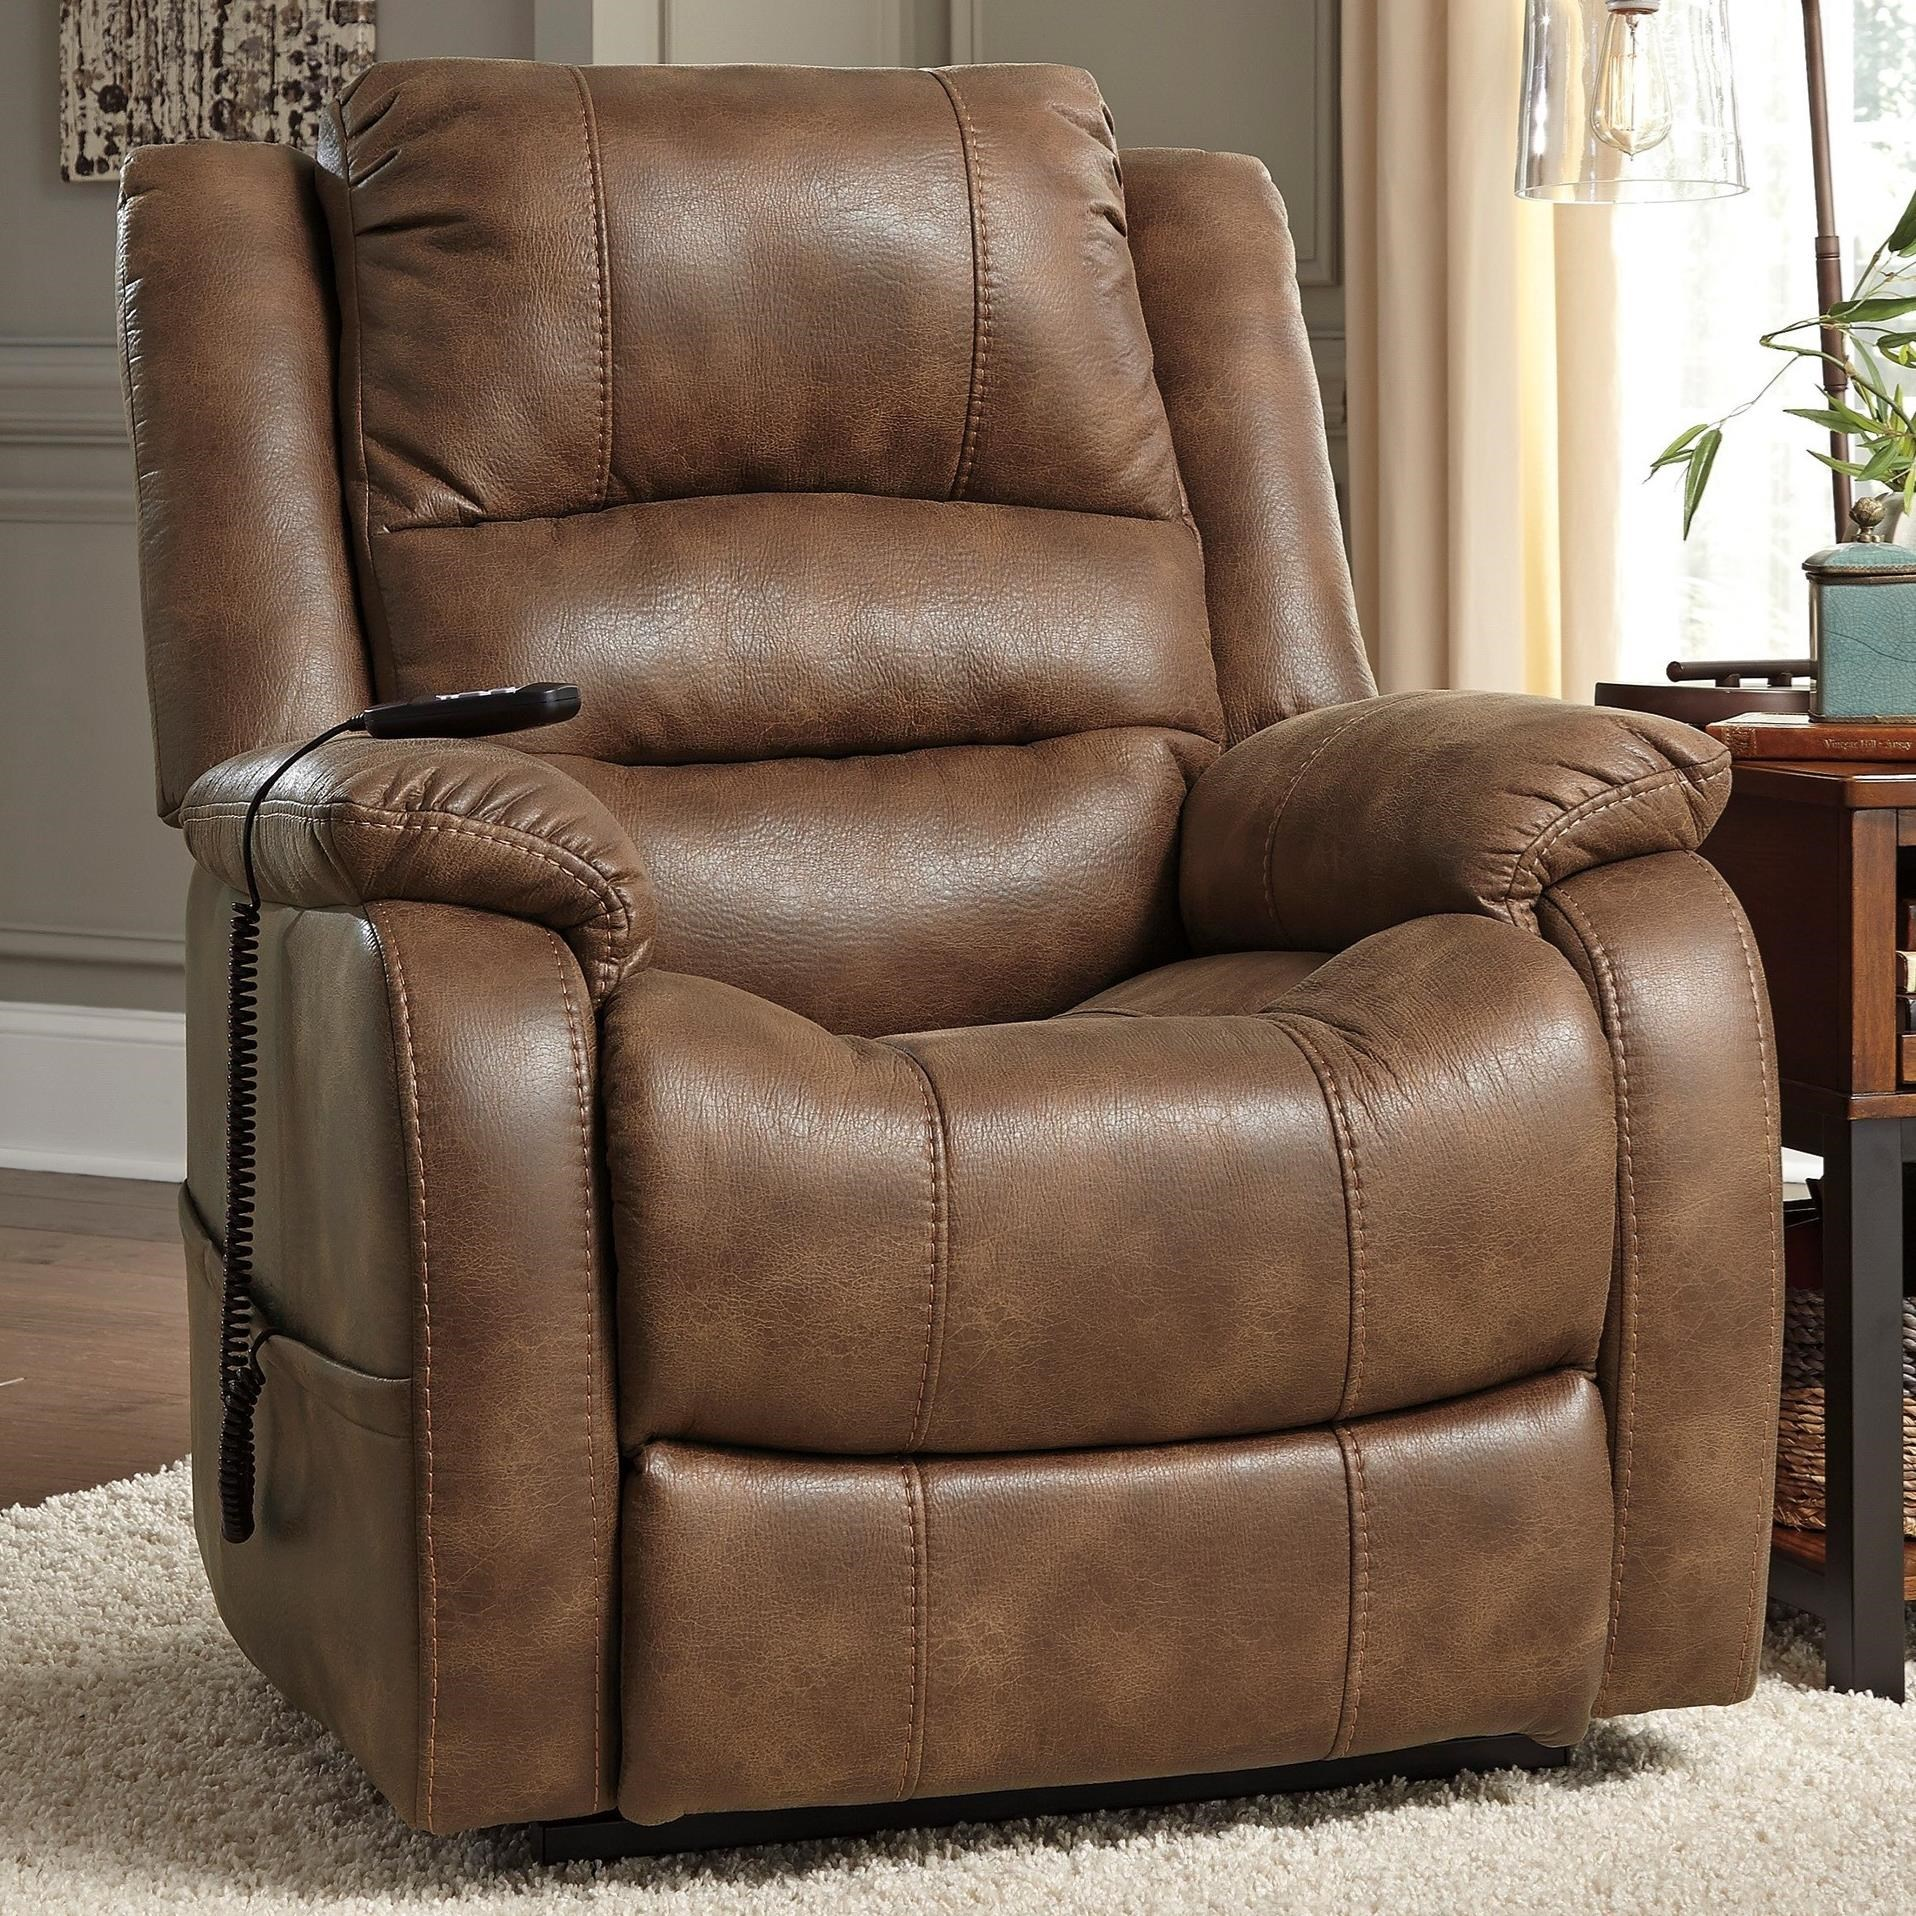 Signature Design by Ashley YandelPower Lift Recliner ...  sc 1 st  Furniture and ApplianceMart & Signature Design by Ashley Yandel 1090012 Faux Leather Power Lift ...